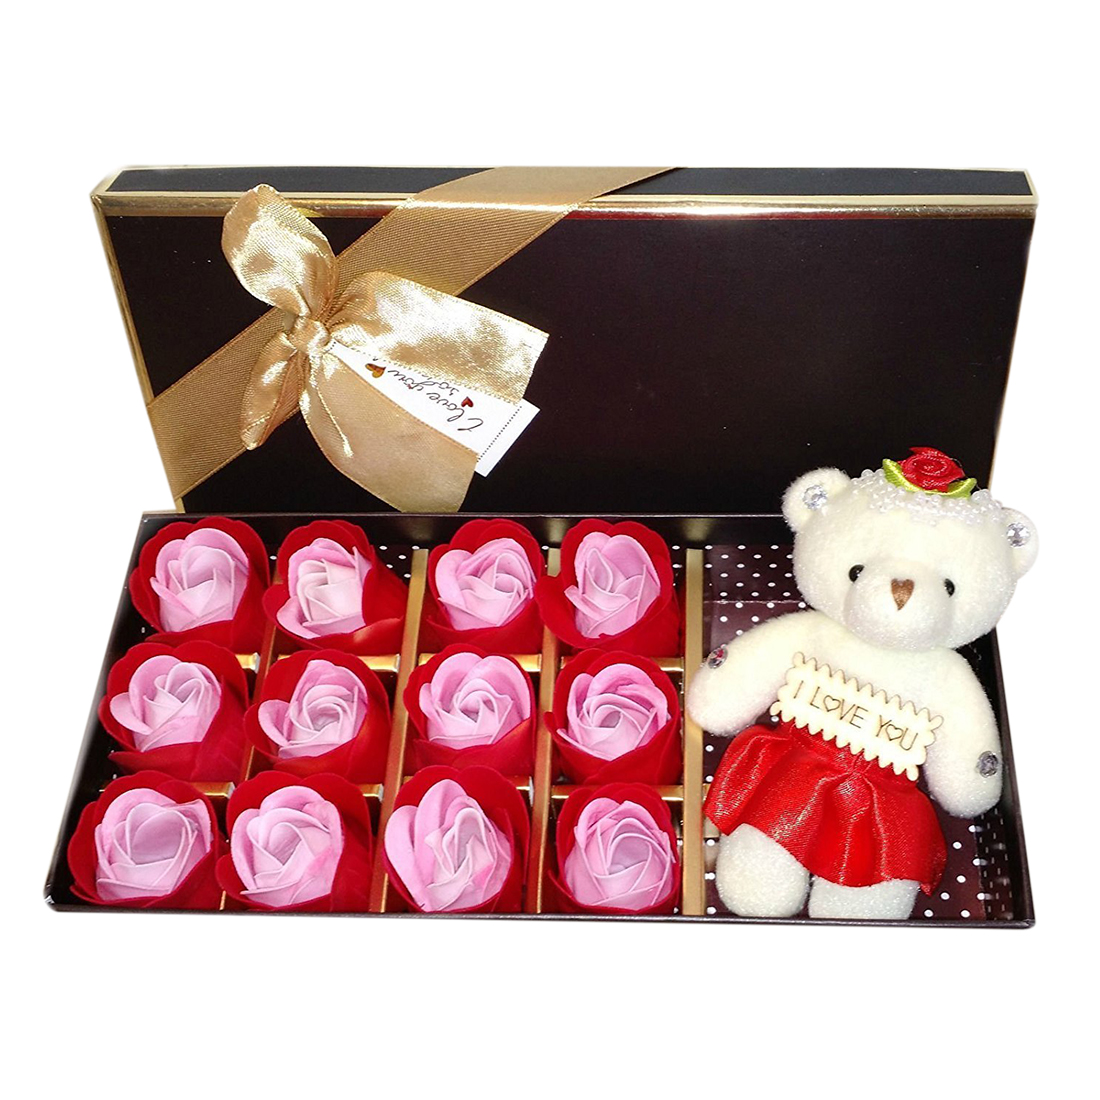 Reasonable 1 Box Rose Flower Soap Gift Box For Bath Perfect Valentines Day Gift With A Bear For Mother Convenience Goods red Wife Or Girlfriend